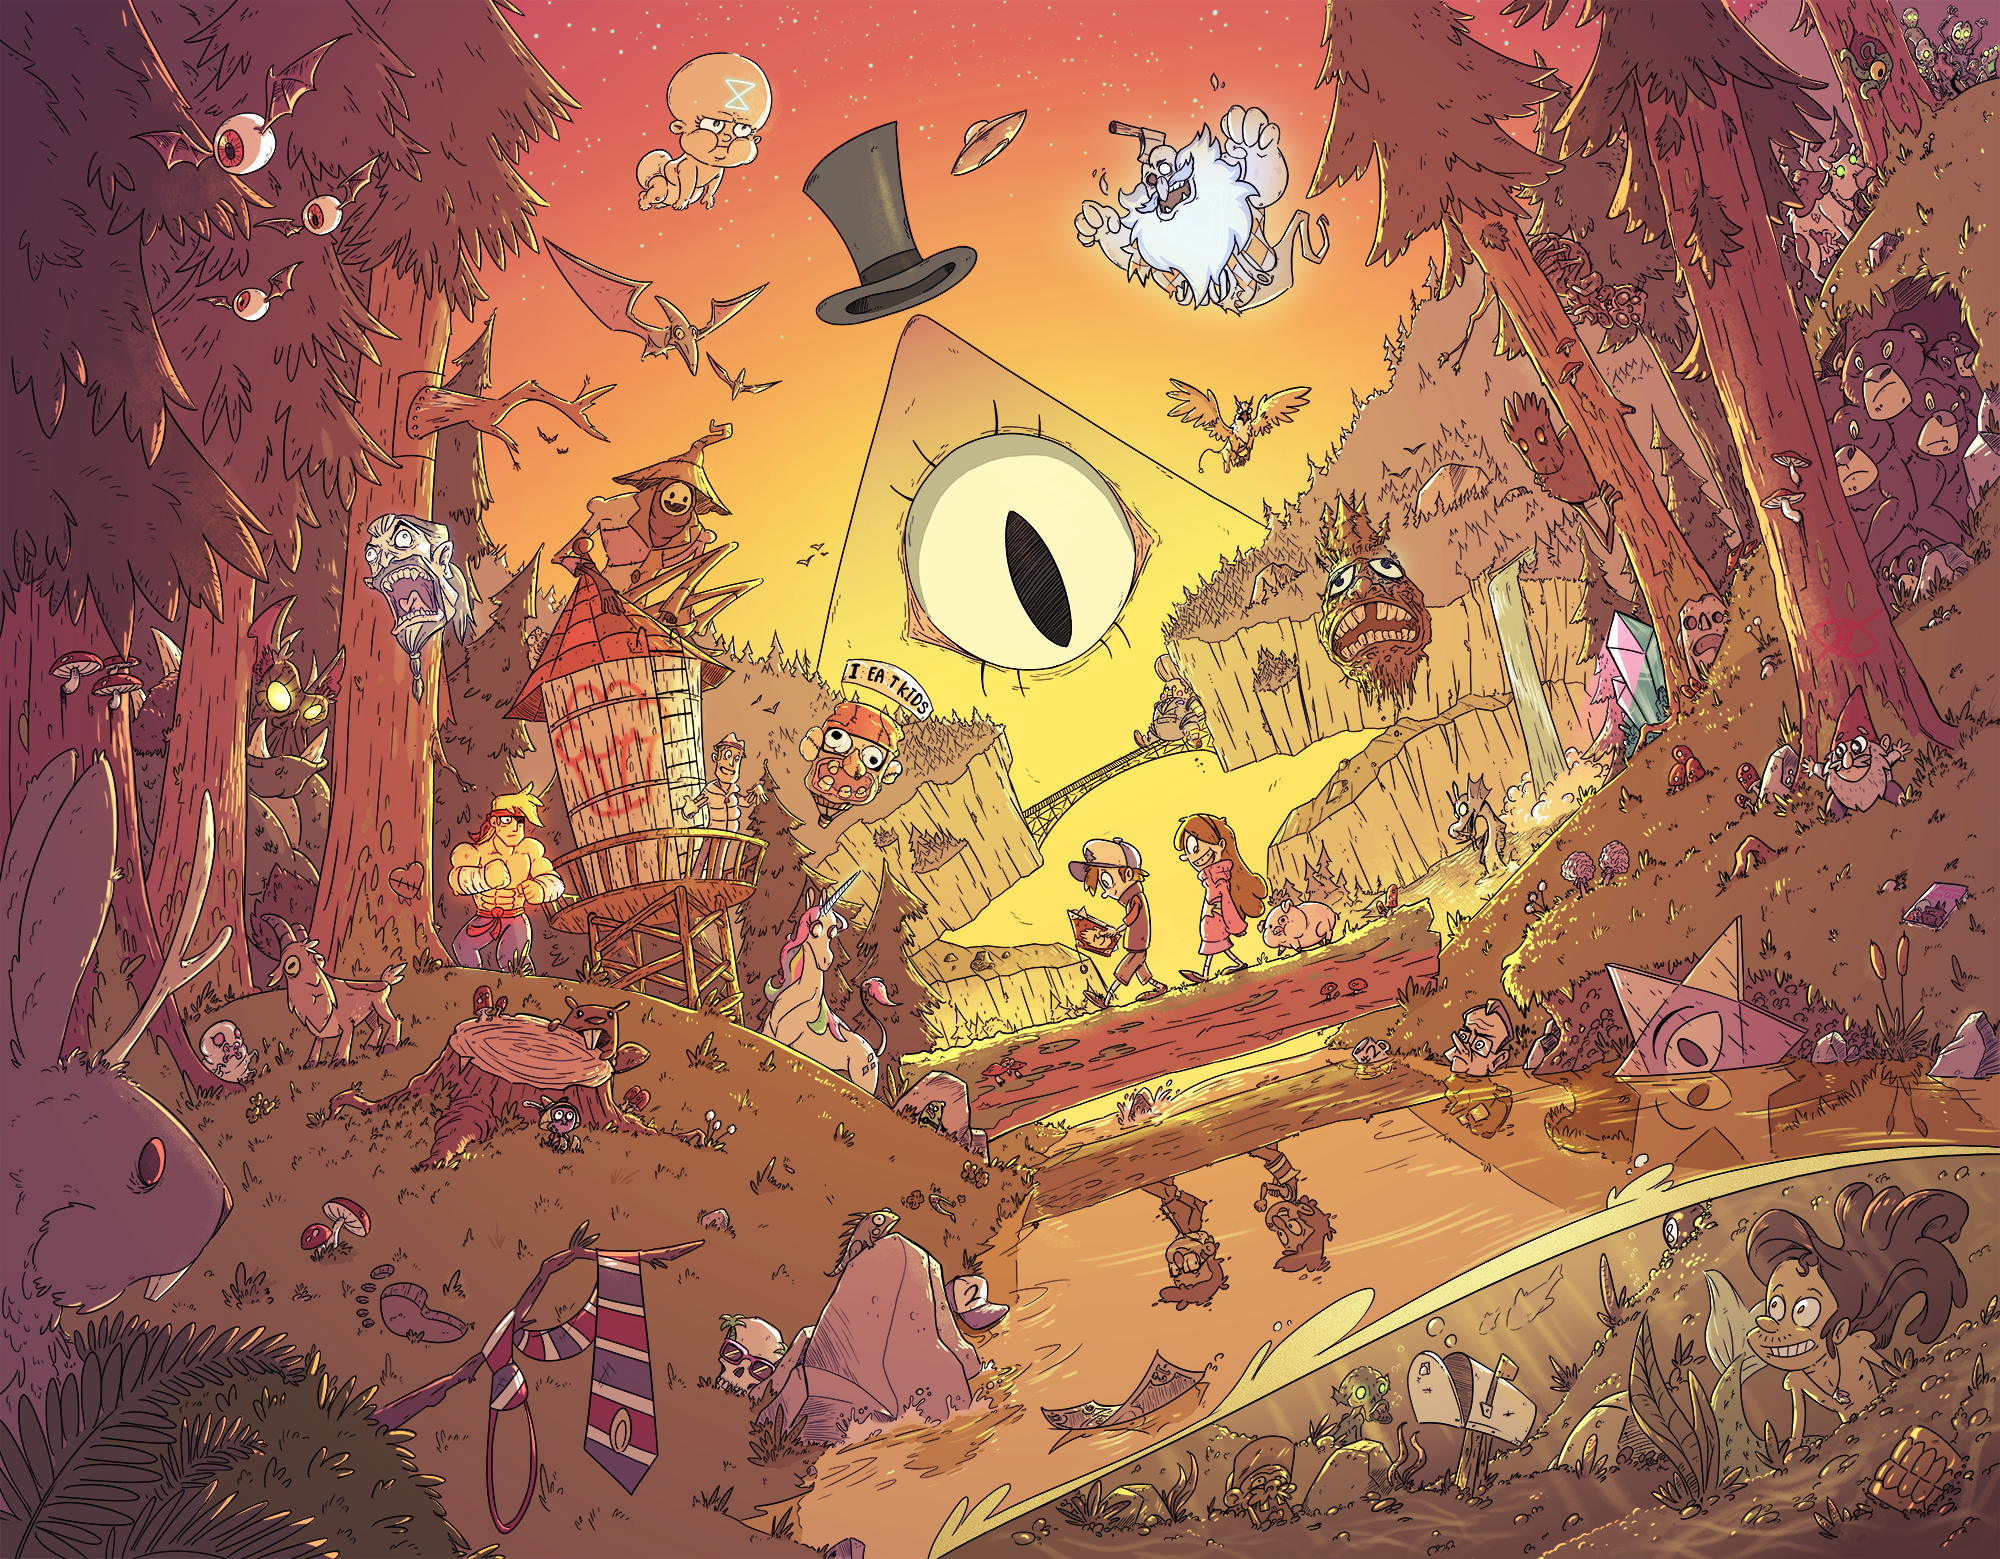 Gravity falls wallpapers pictures images - Gravity movie 4k ...